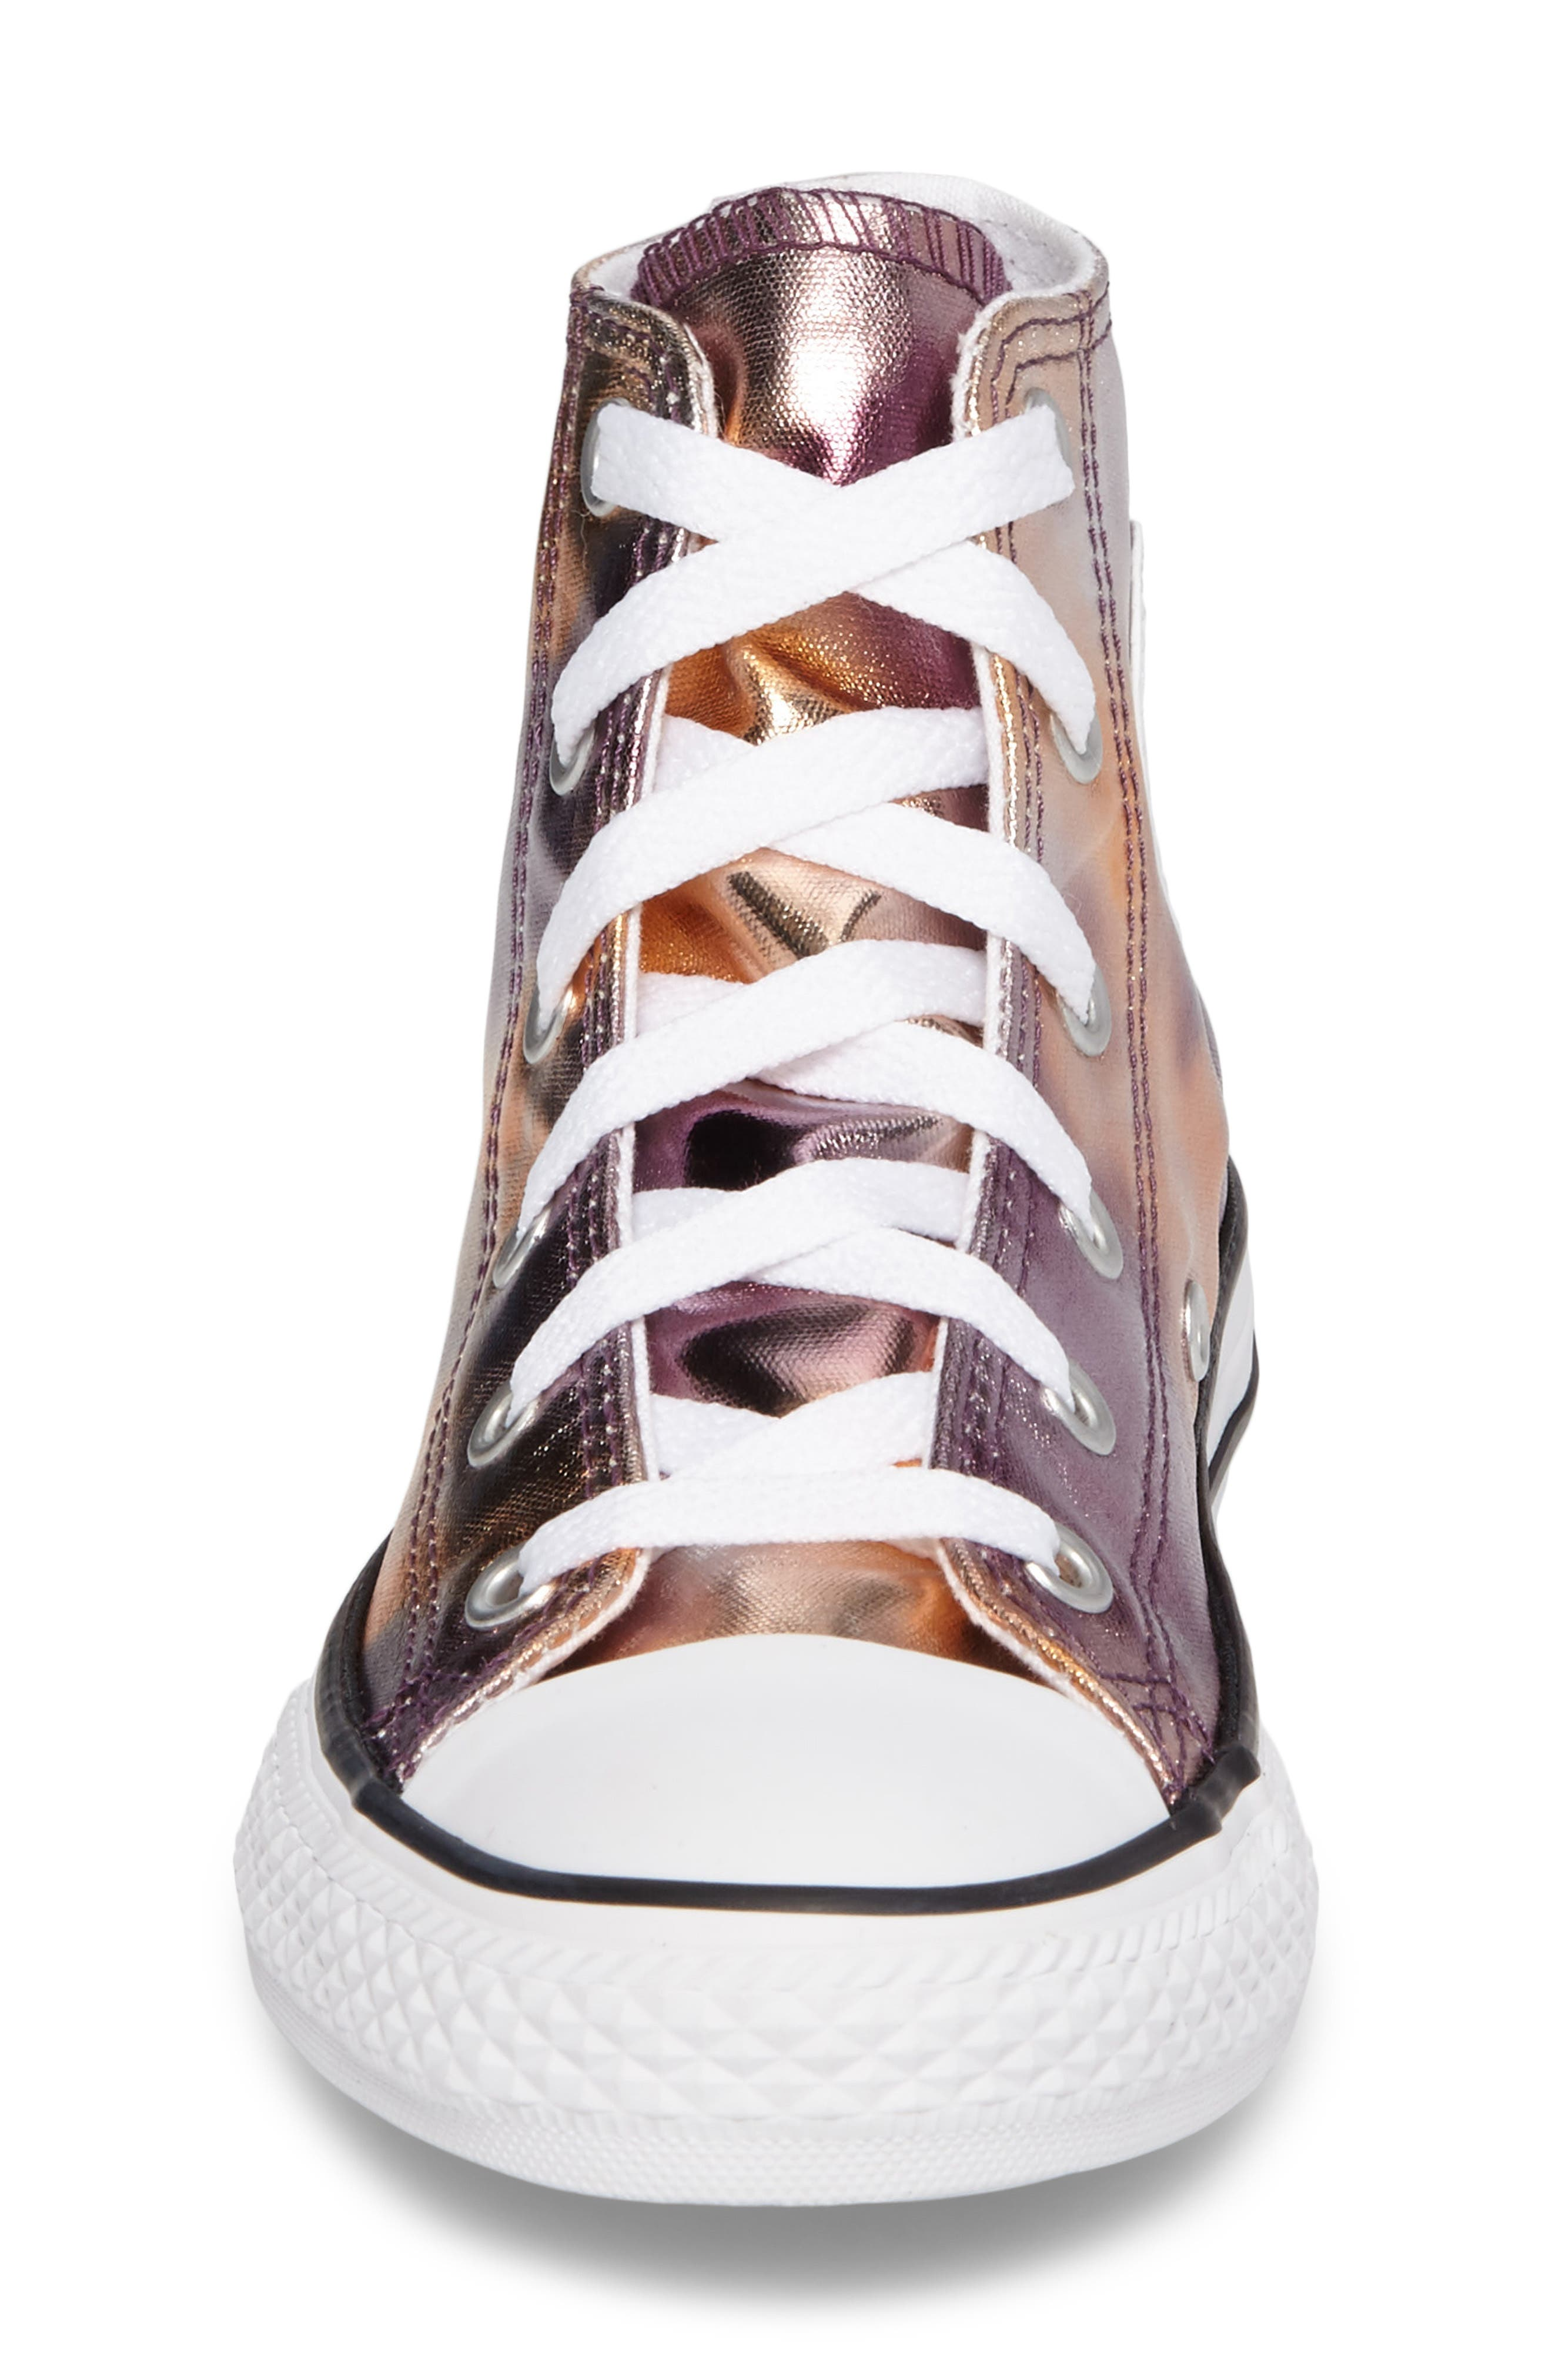 Chuck Taylor<sup>®</sup> All Star<sup>®</sup> Metallic High Top Sneaker,                             Alternate thumbnail 4, color,                             Dusk Pink Coated Canvas